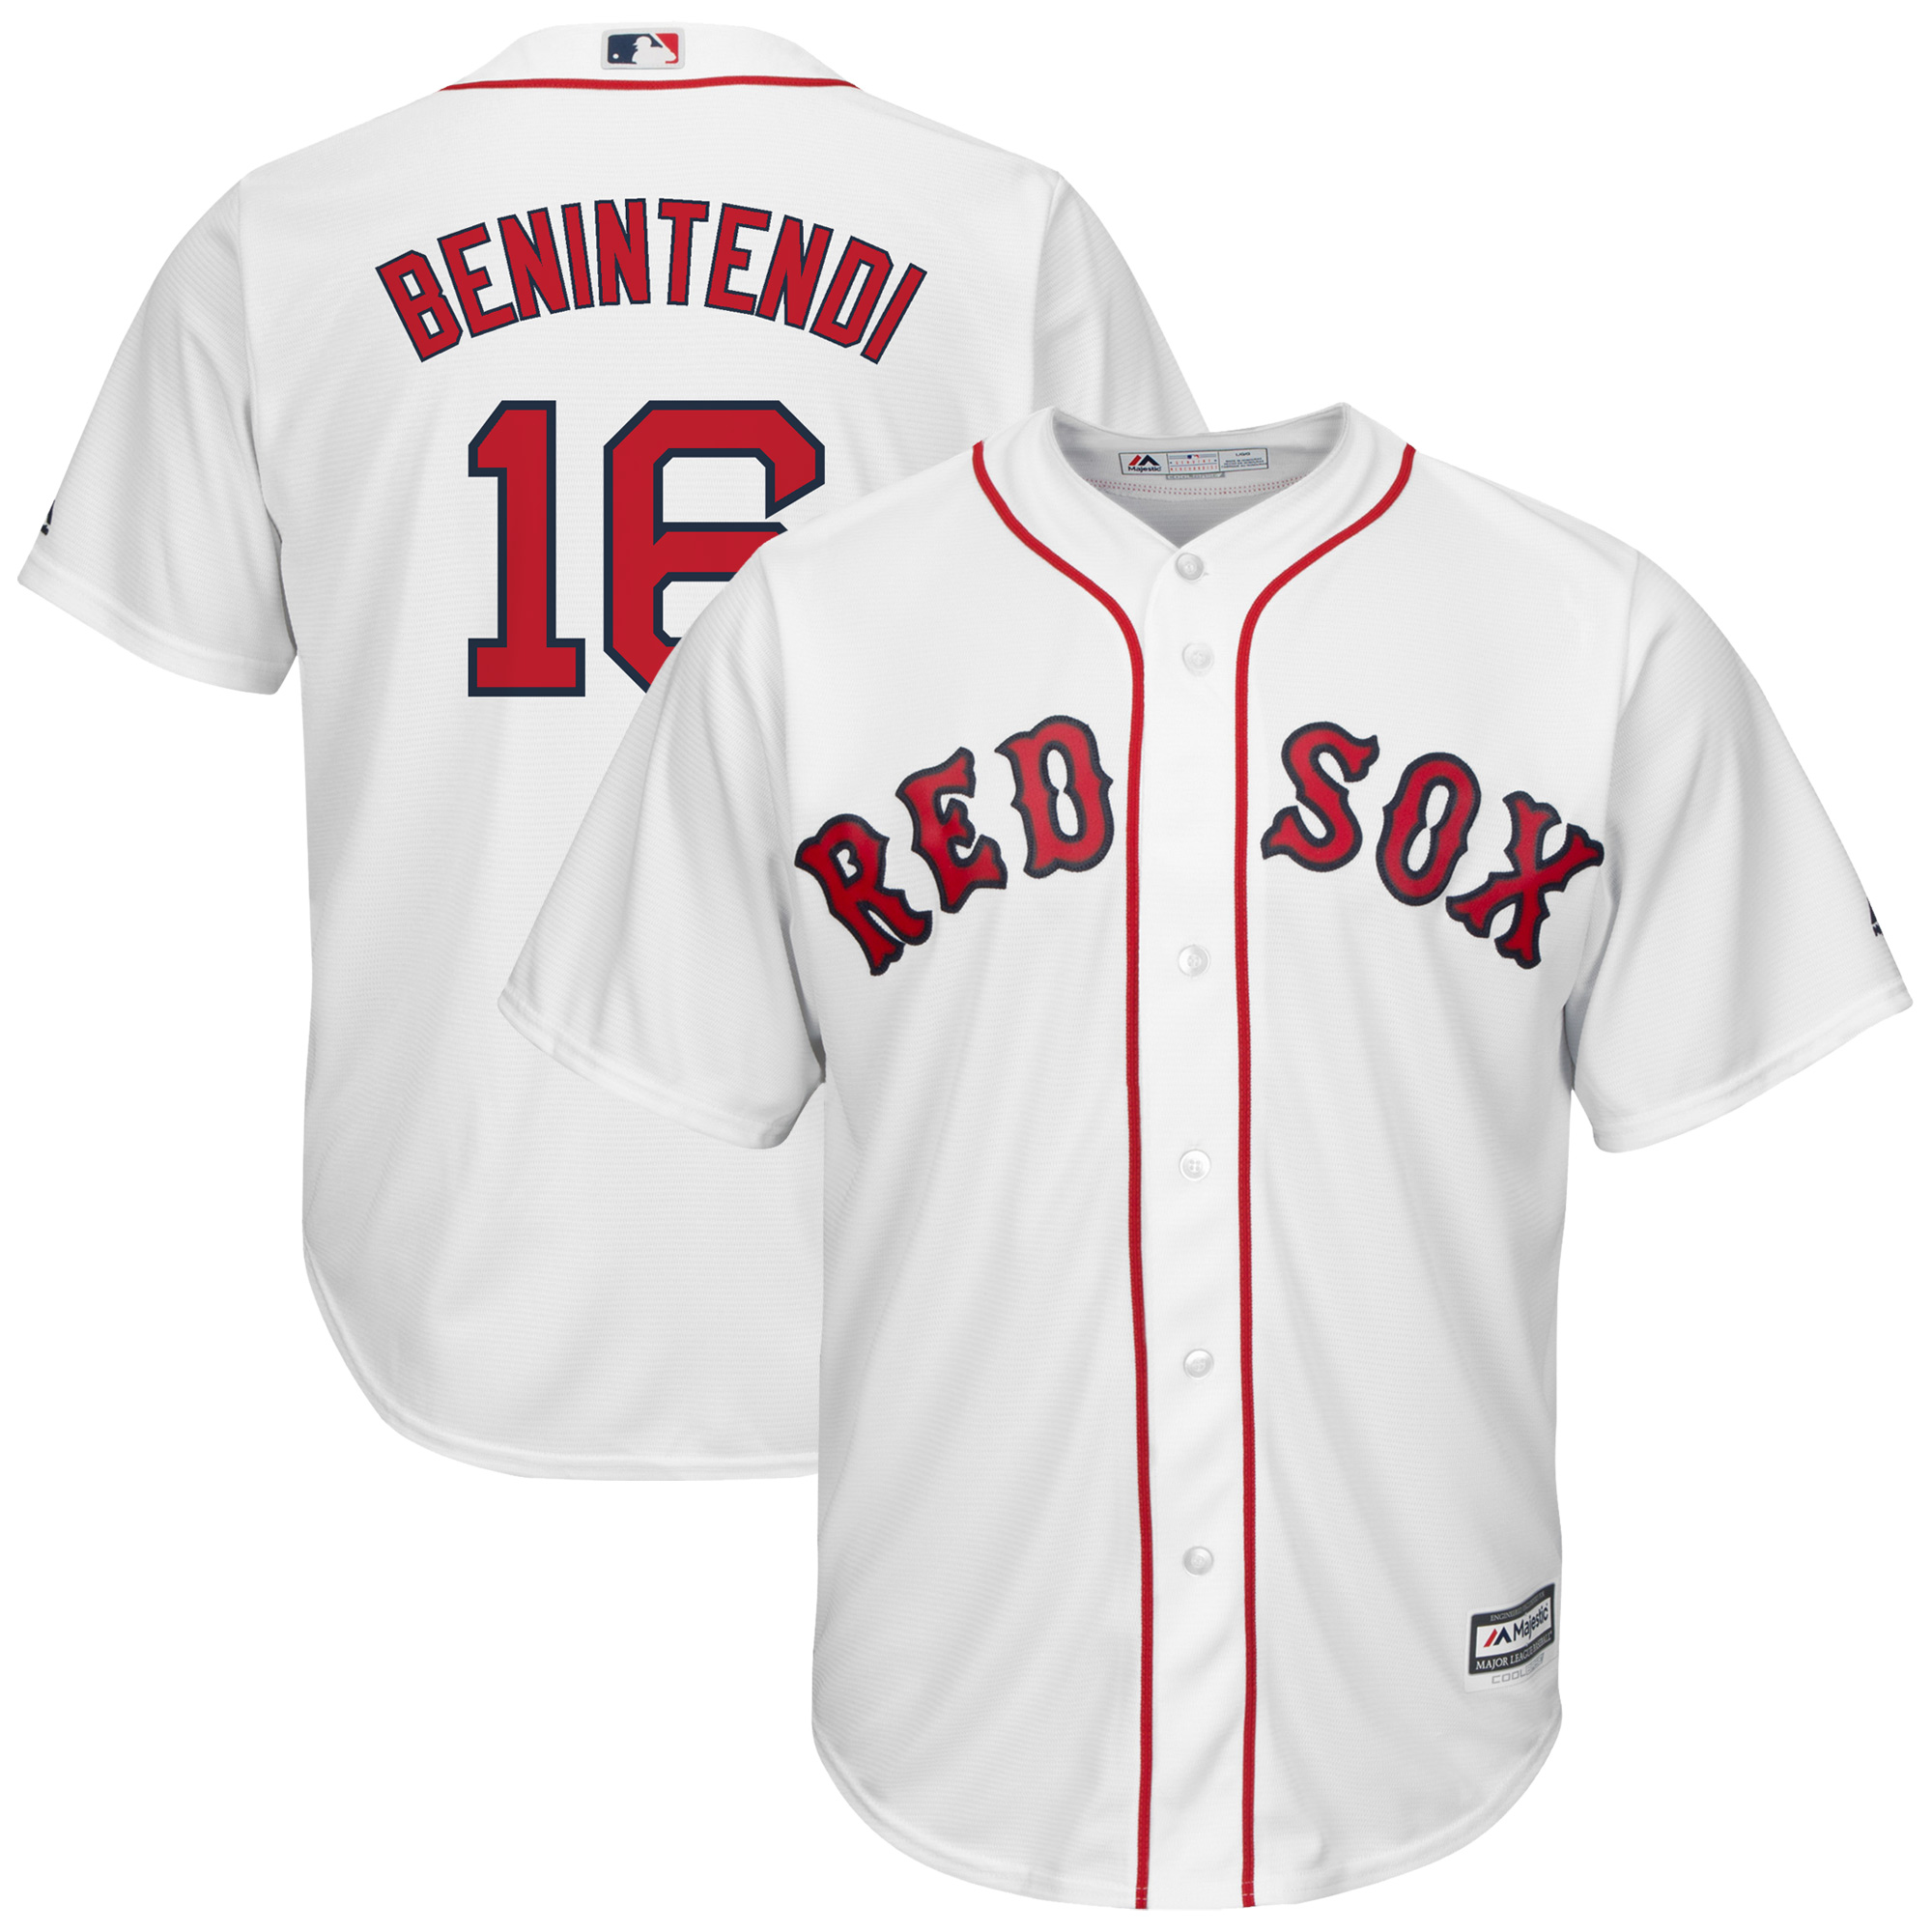 Andrew Benintendi Boston Red Sox Majestic Youth Home Official Cool Base Replica Player Jersey - White